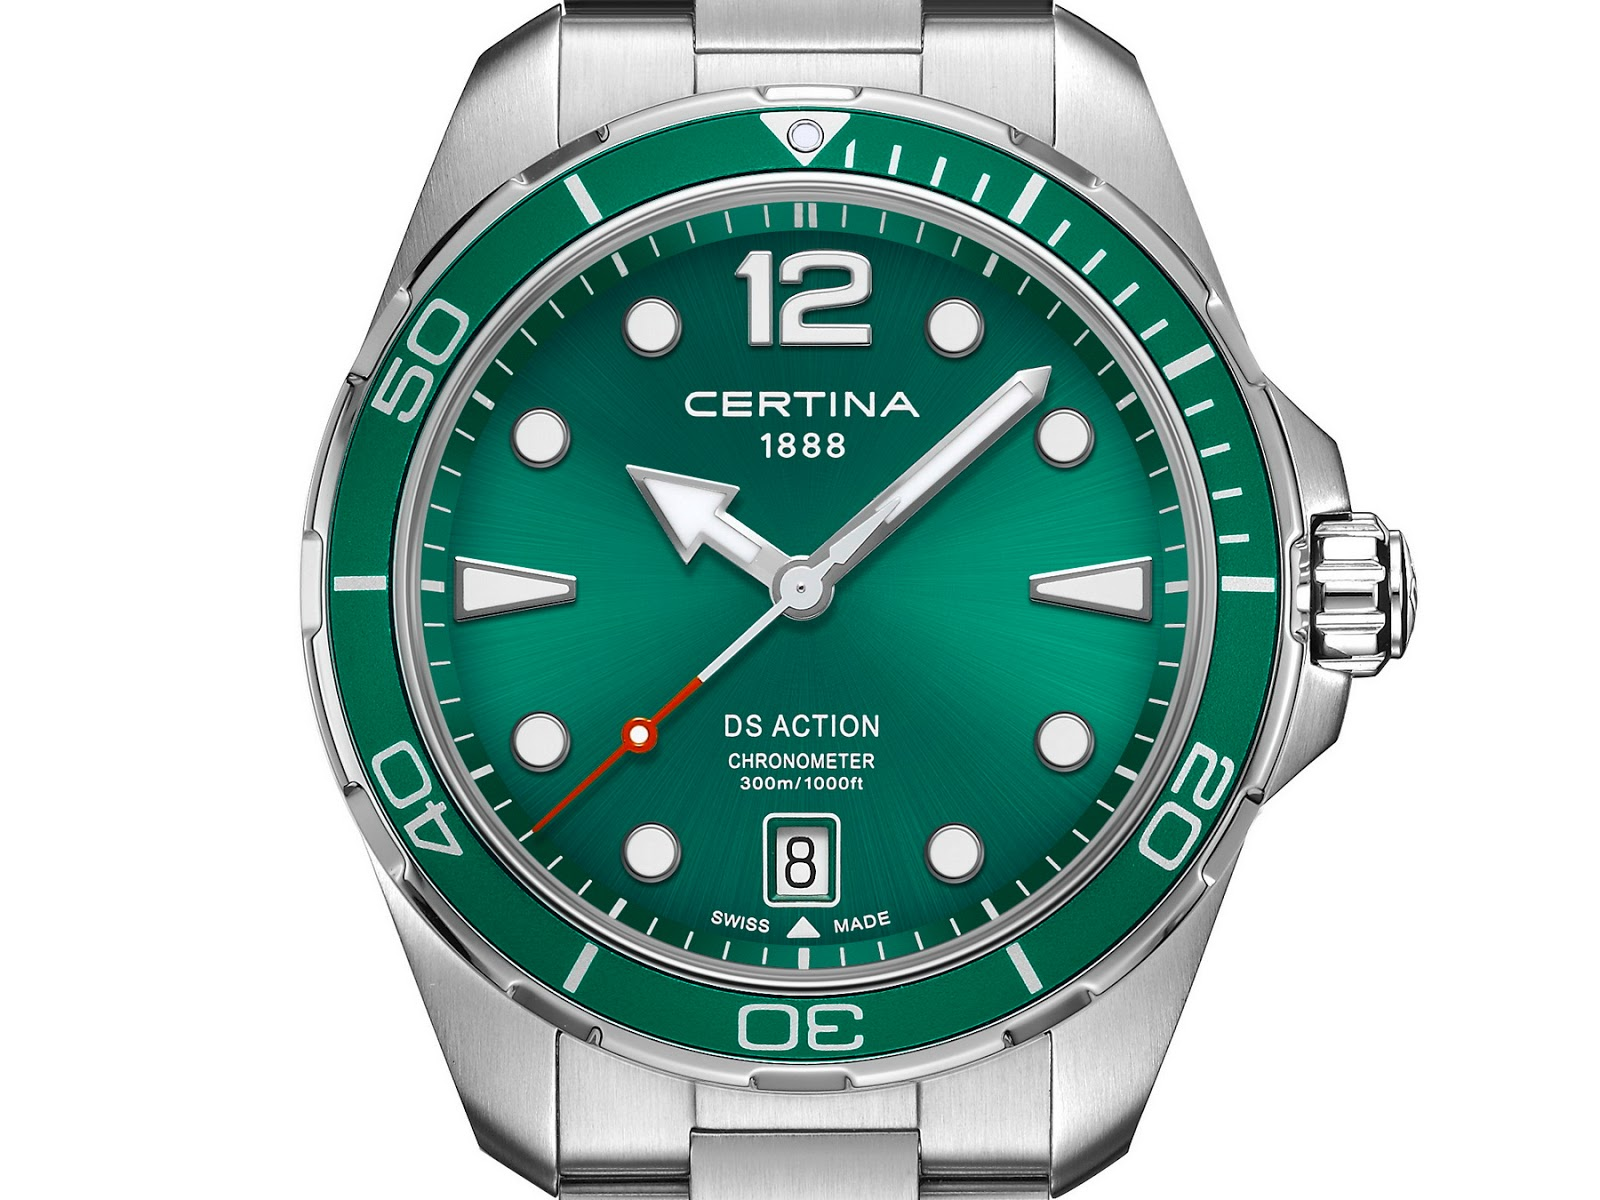 Certina's new COSC-Certified DS Action Divers CERTINA+DS+Action+DIVER+COSC-Certified+05